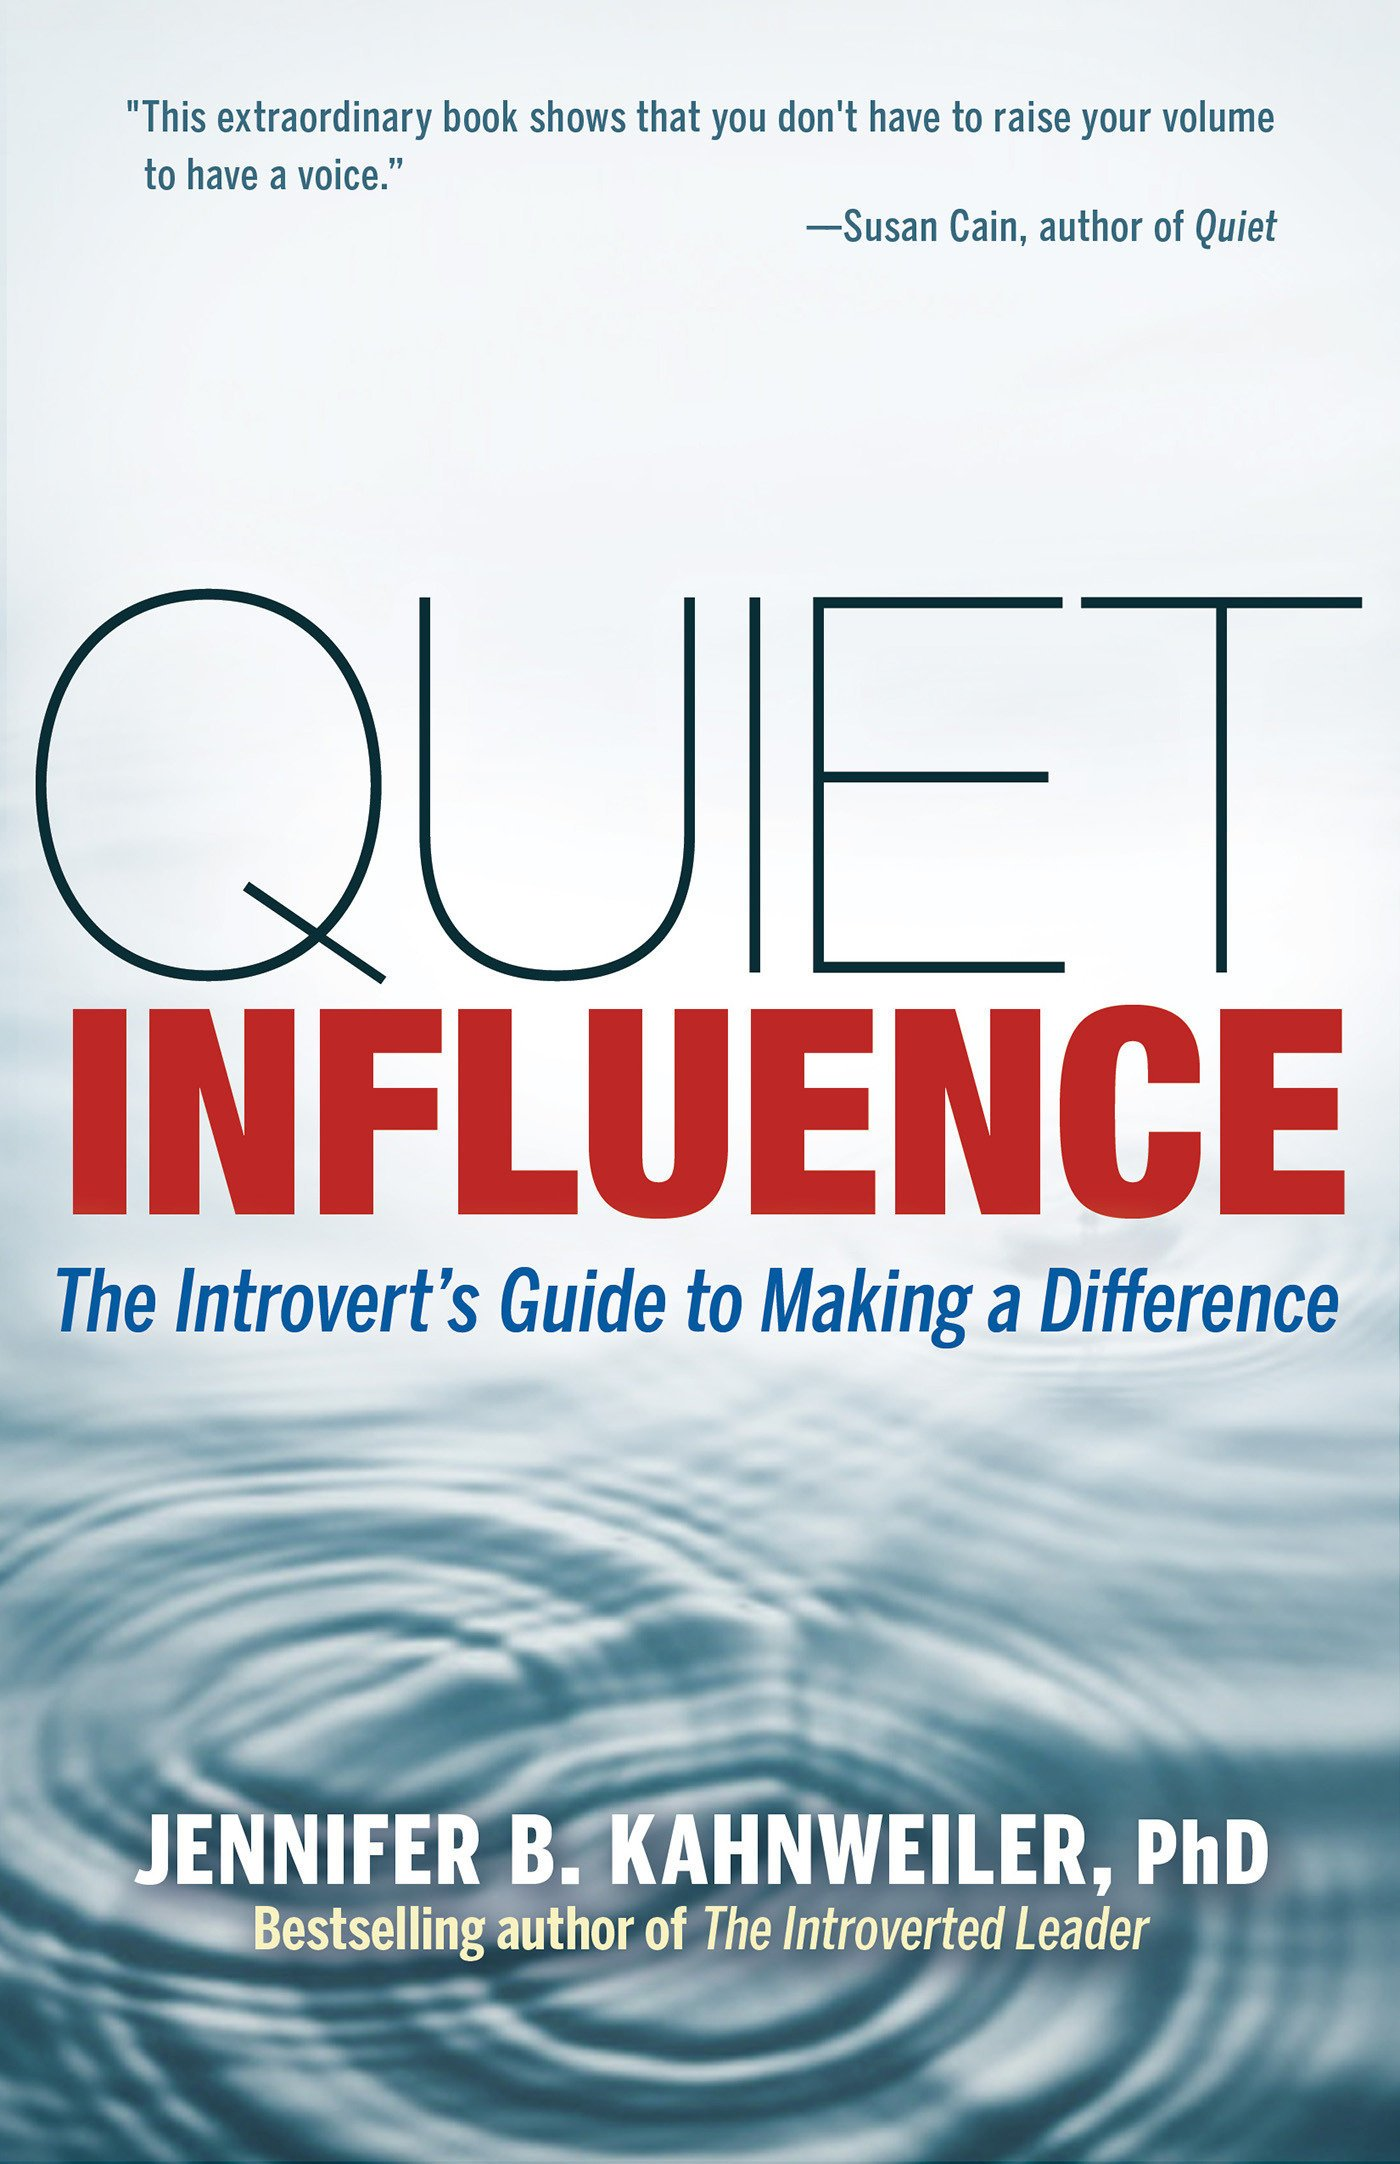 Quiet Influence: The Introvert's Guide to Making a Difference: Jennifer B.  Kahnweiler: 9781609945626: Books - Amazon.ca